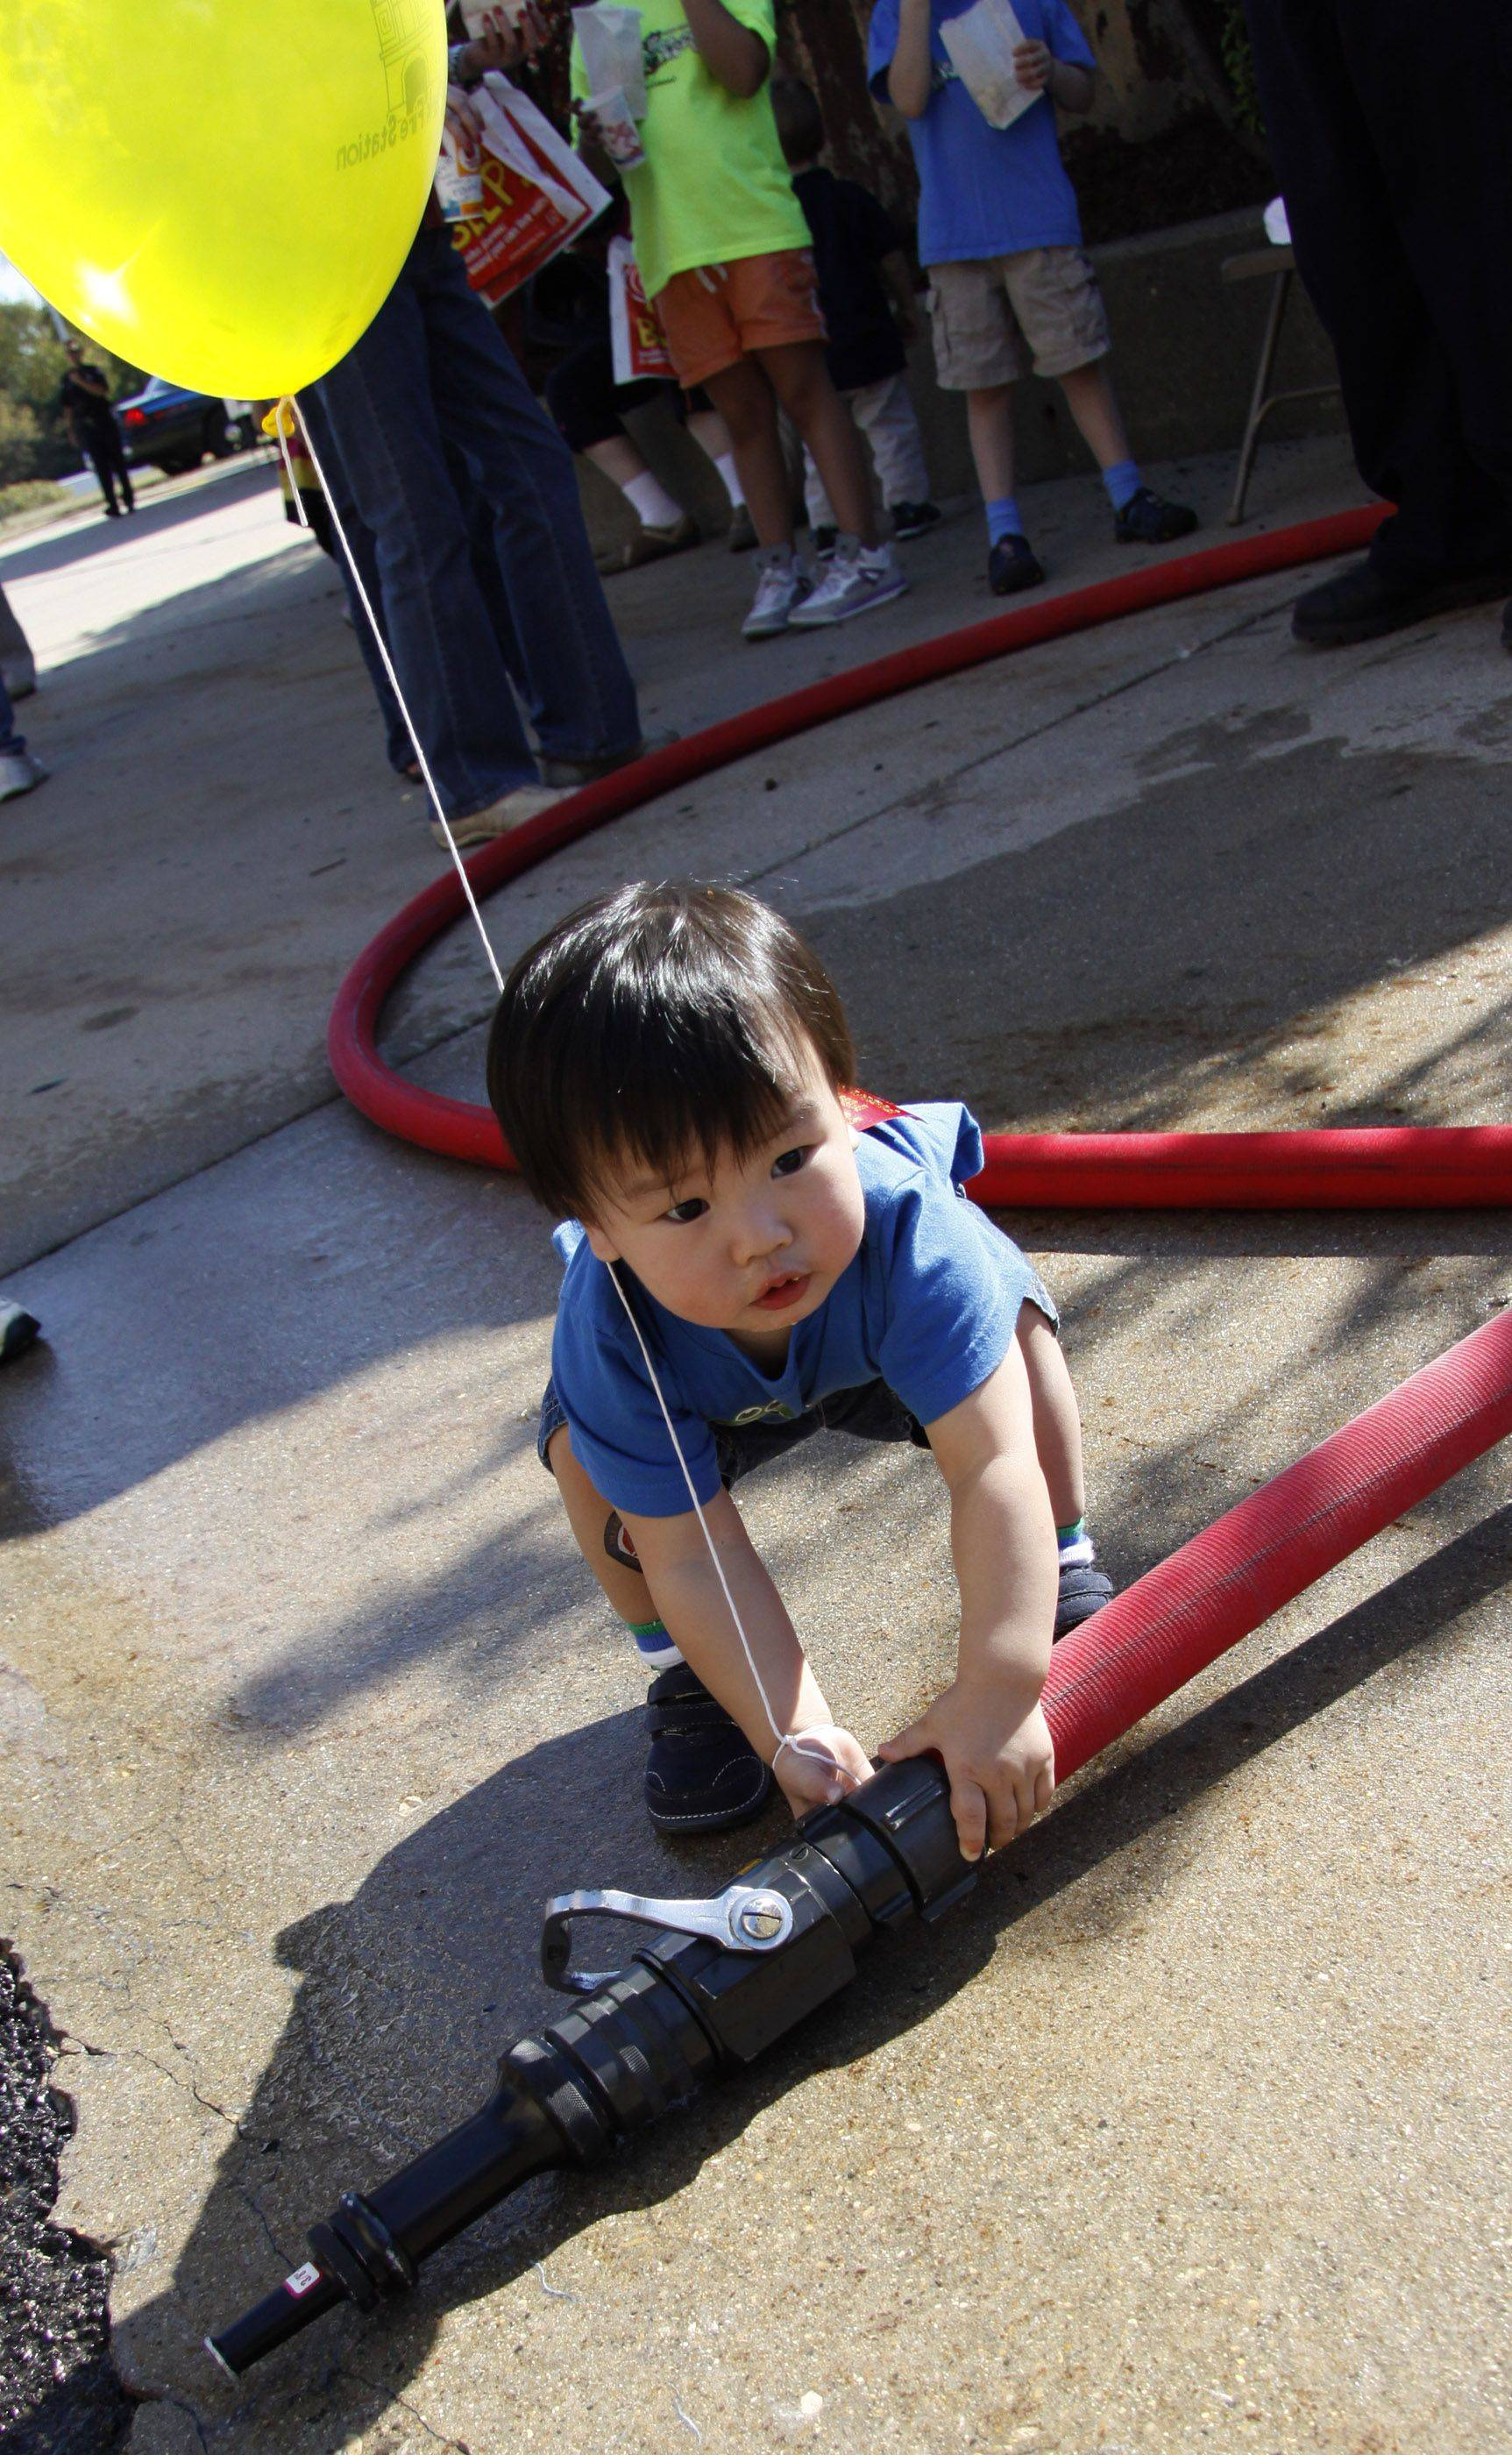 Cole Williams, 1 of Lombard, tries to pick up the fire hose when no one was looking at the Villa Park Fire Department's open house on fire safety held Saturday in Villa Park.